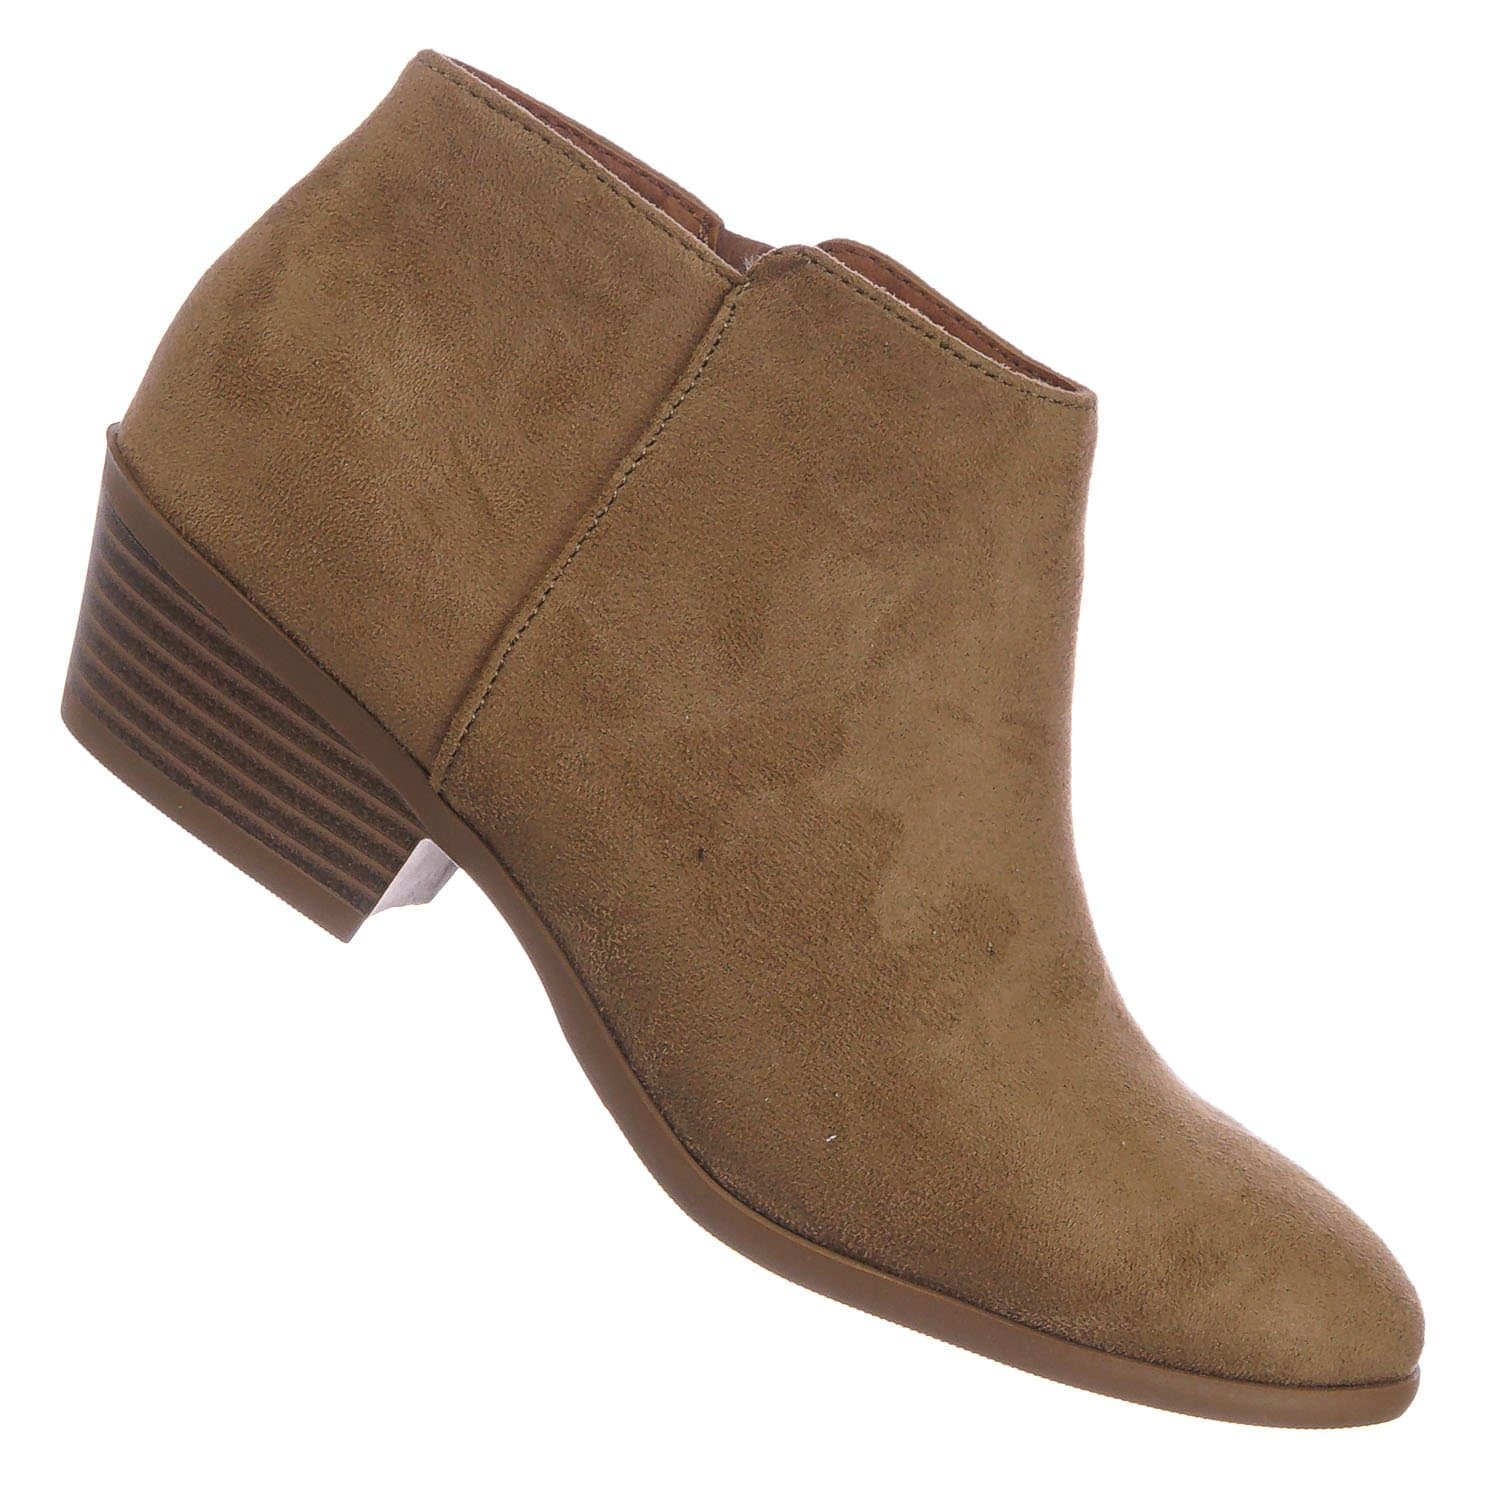 Mug Natural Western Low Chunky Block Heel Bootie - Women Ankle Boots w Stack Heel